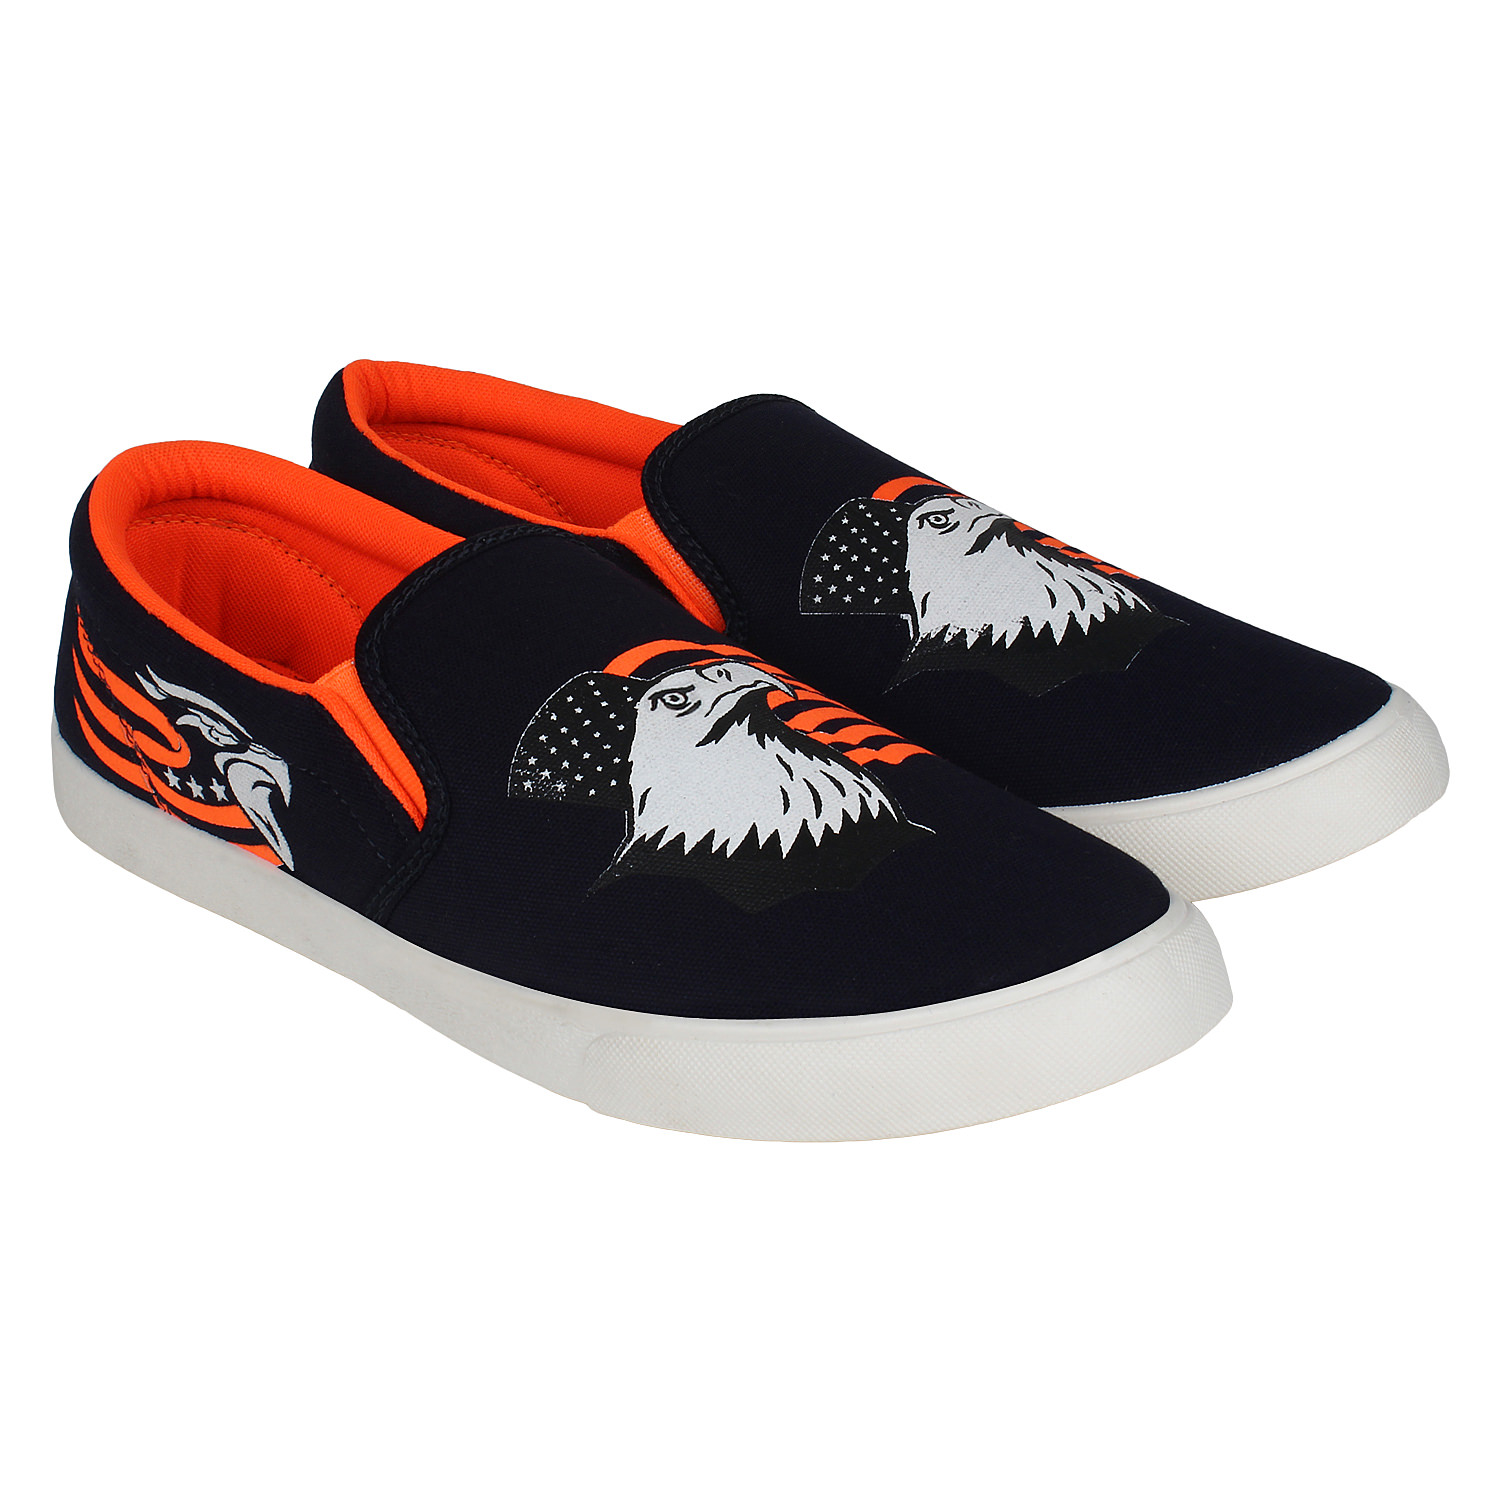 Foot Trends Stylish Trendy & Fashionable Loafers For Men Baaz (Orange,7-10,4 PAIR)